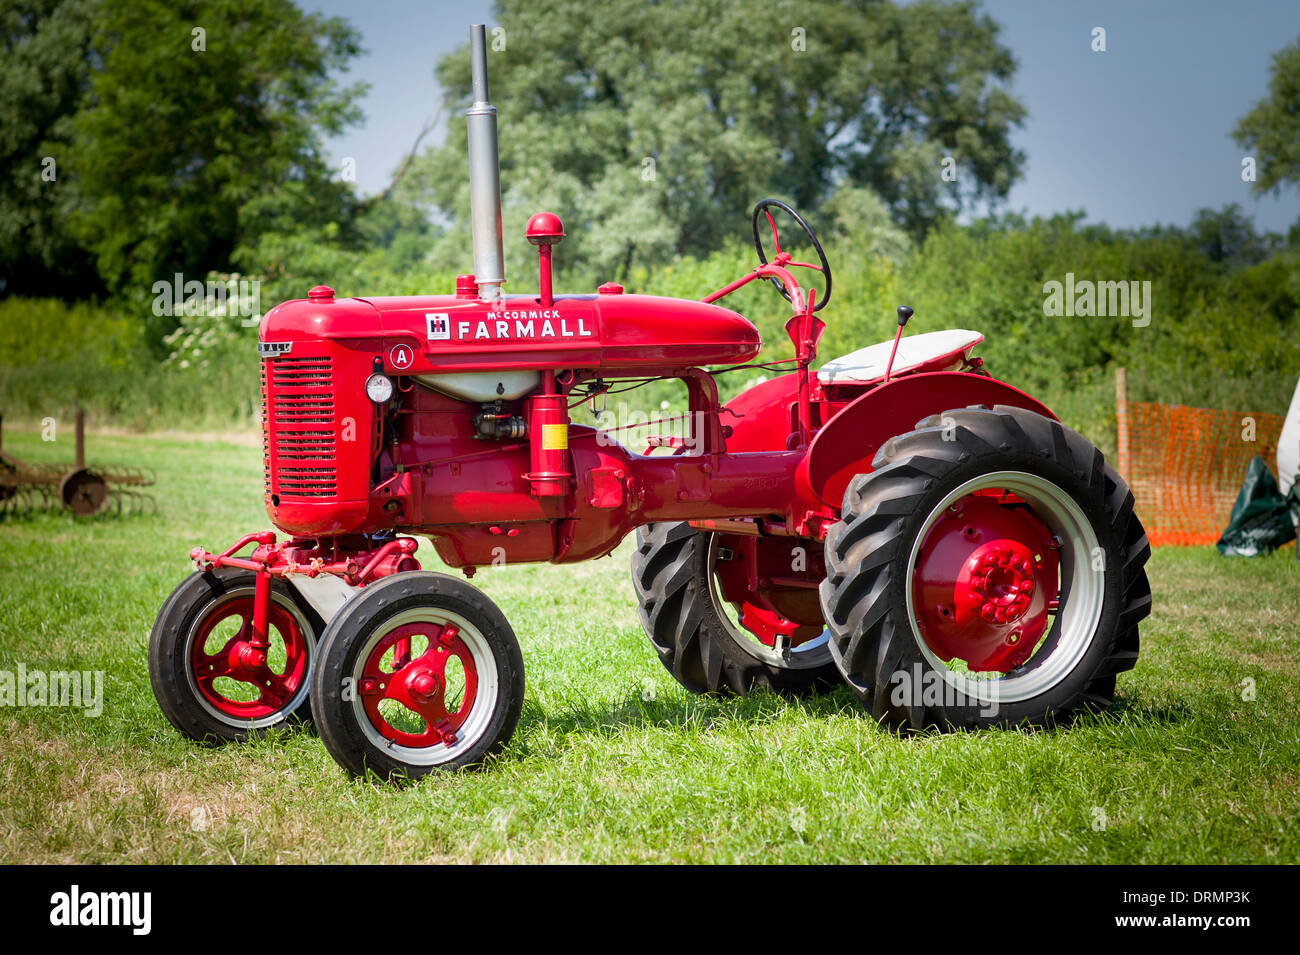 International Harvester FARMALL tractor restored and on show in England - Stock Image